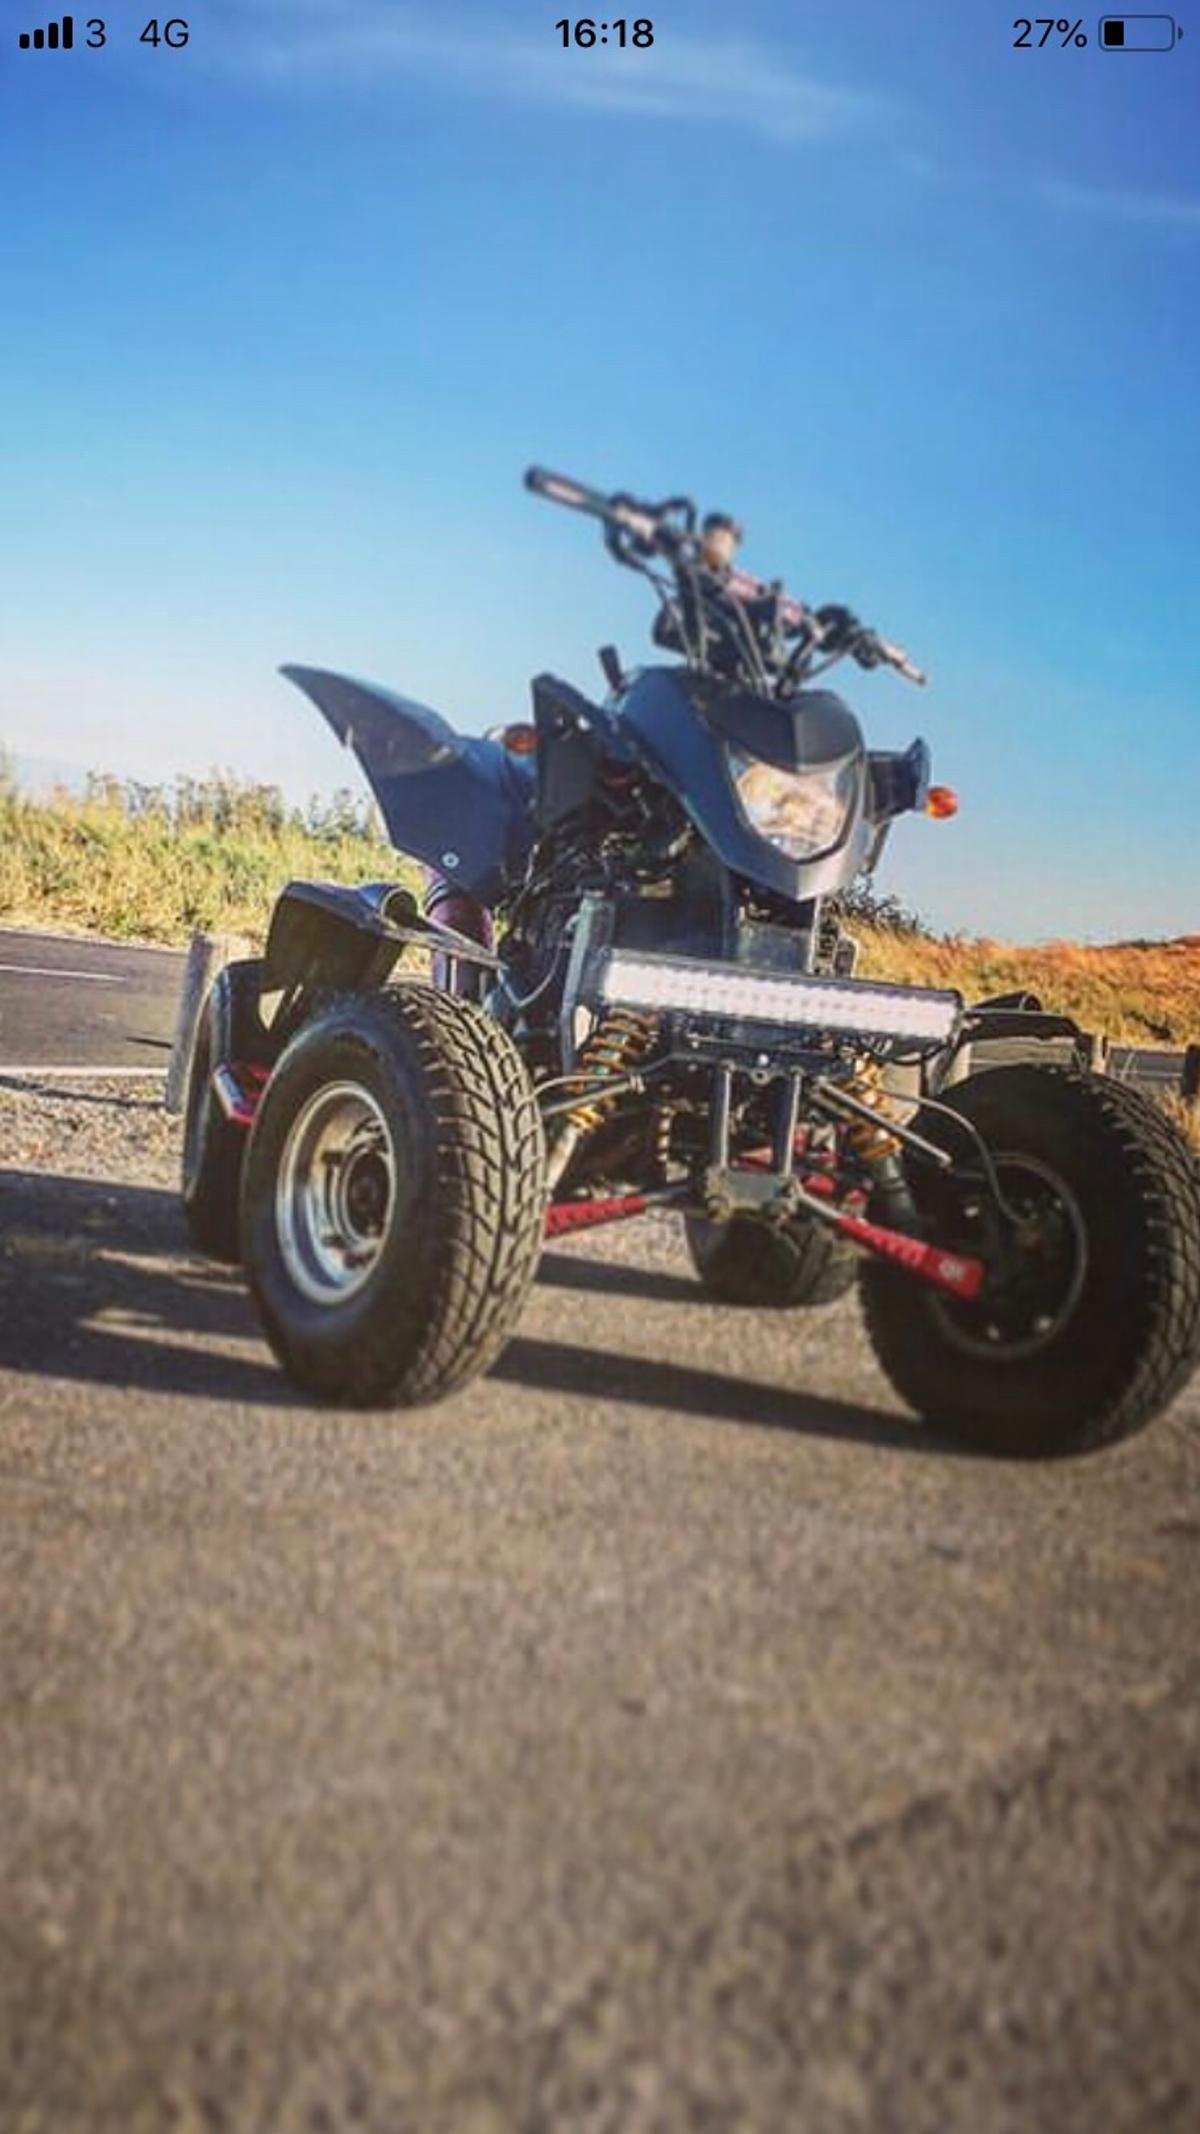 600cc quadzilla regesterd as a 300cc in TN39 Rother for